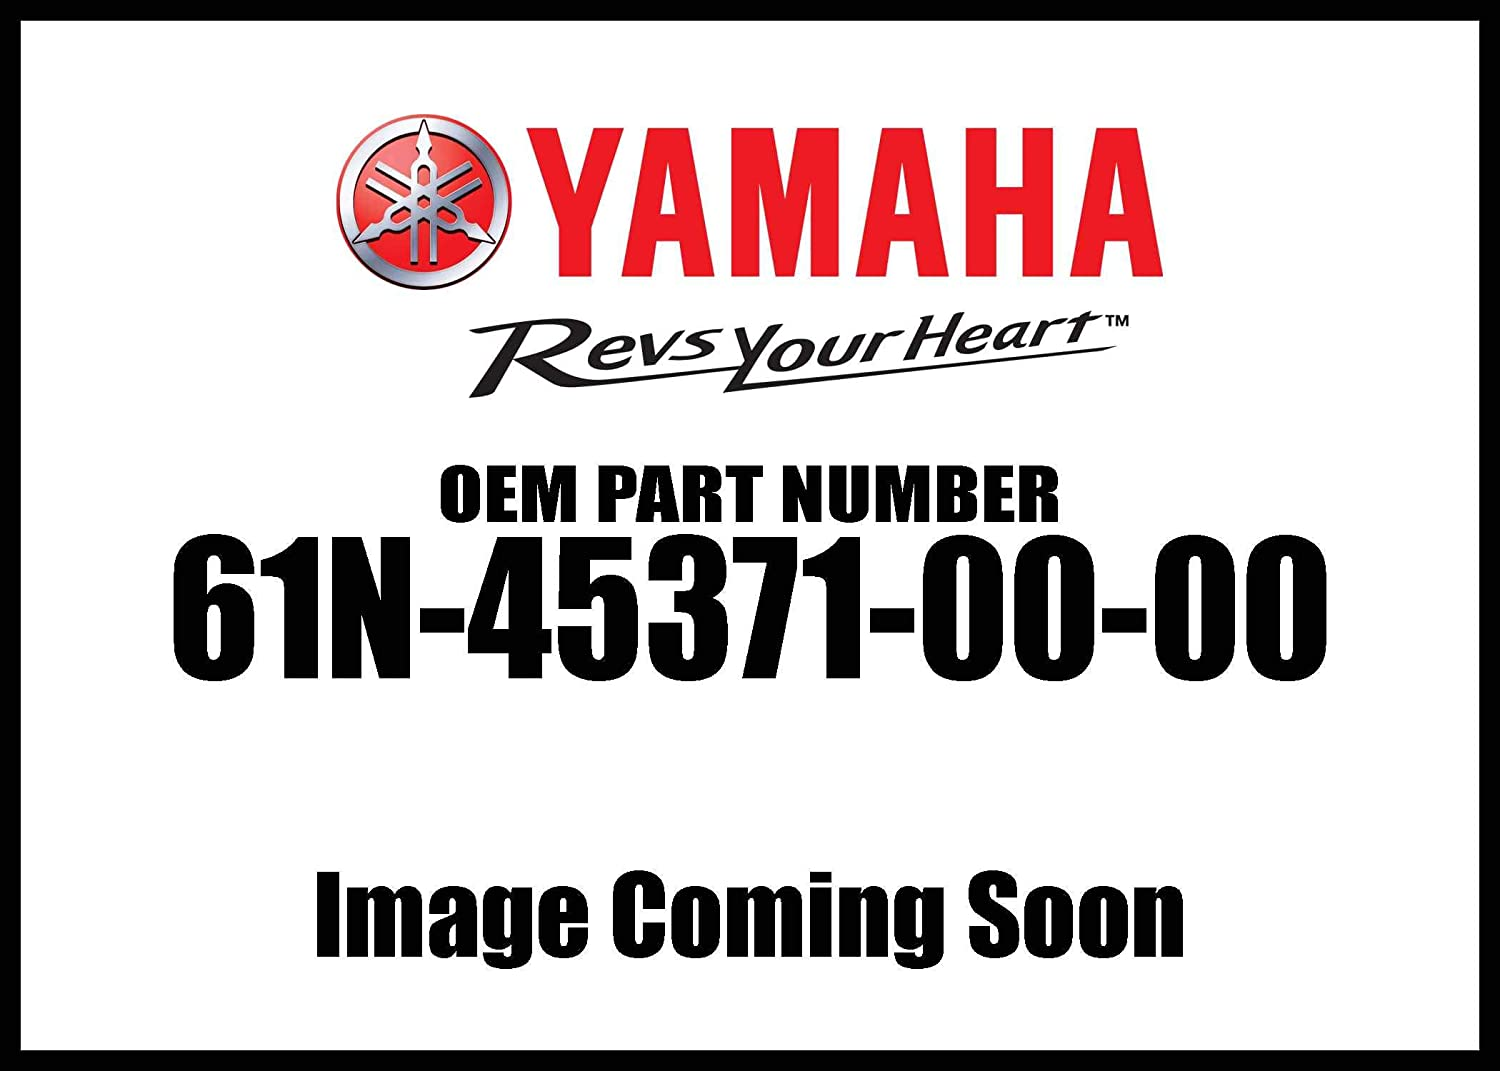 Yamaha 61N-45371-00-00 Trim-Tab; 61N453710000 Made by Yamaha